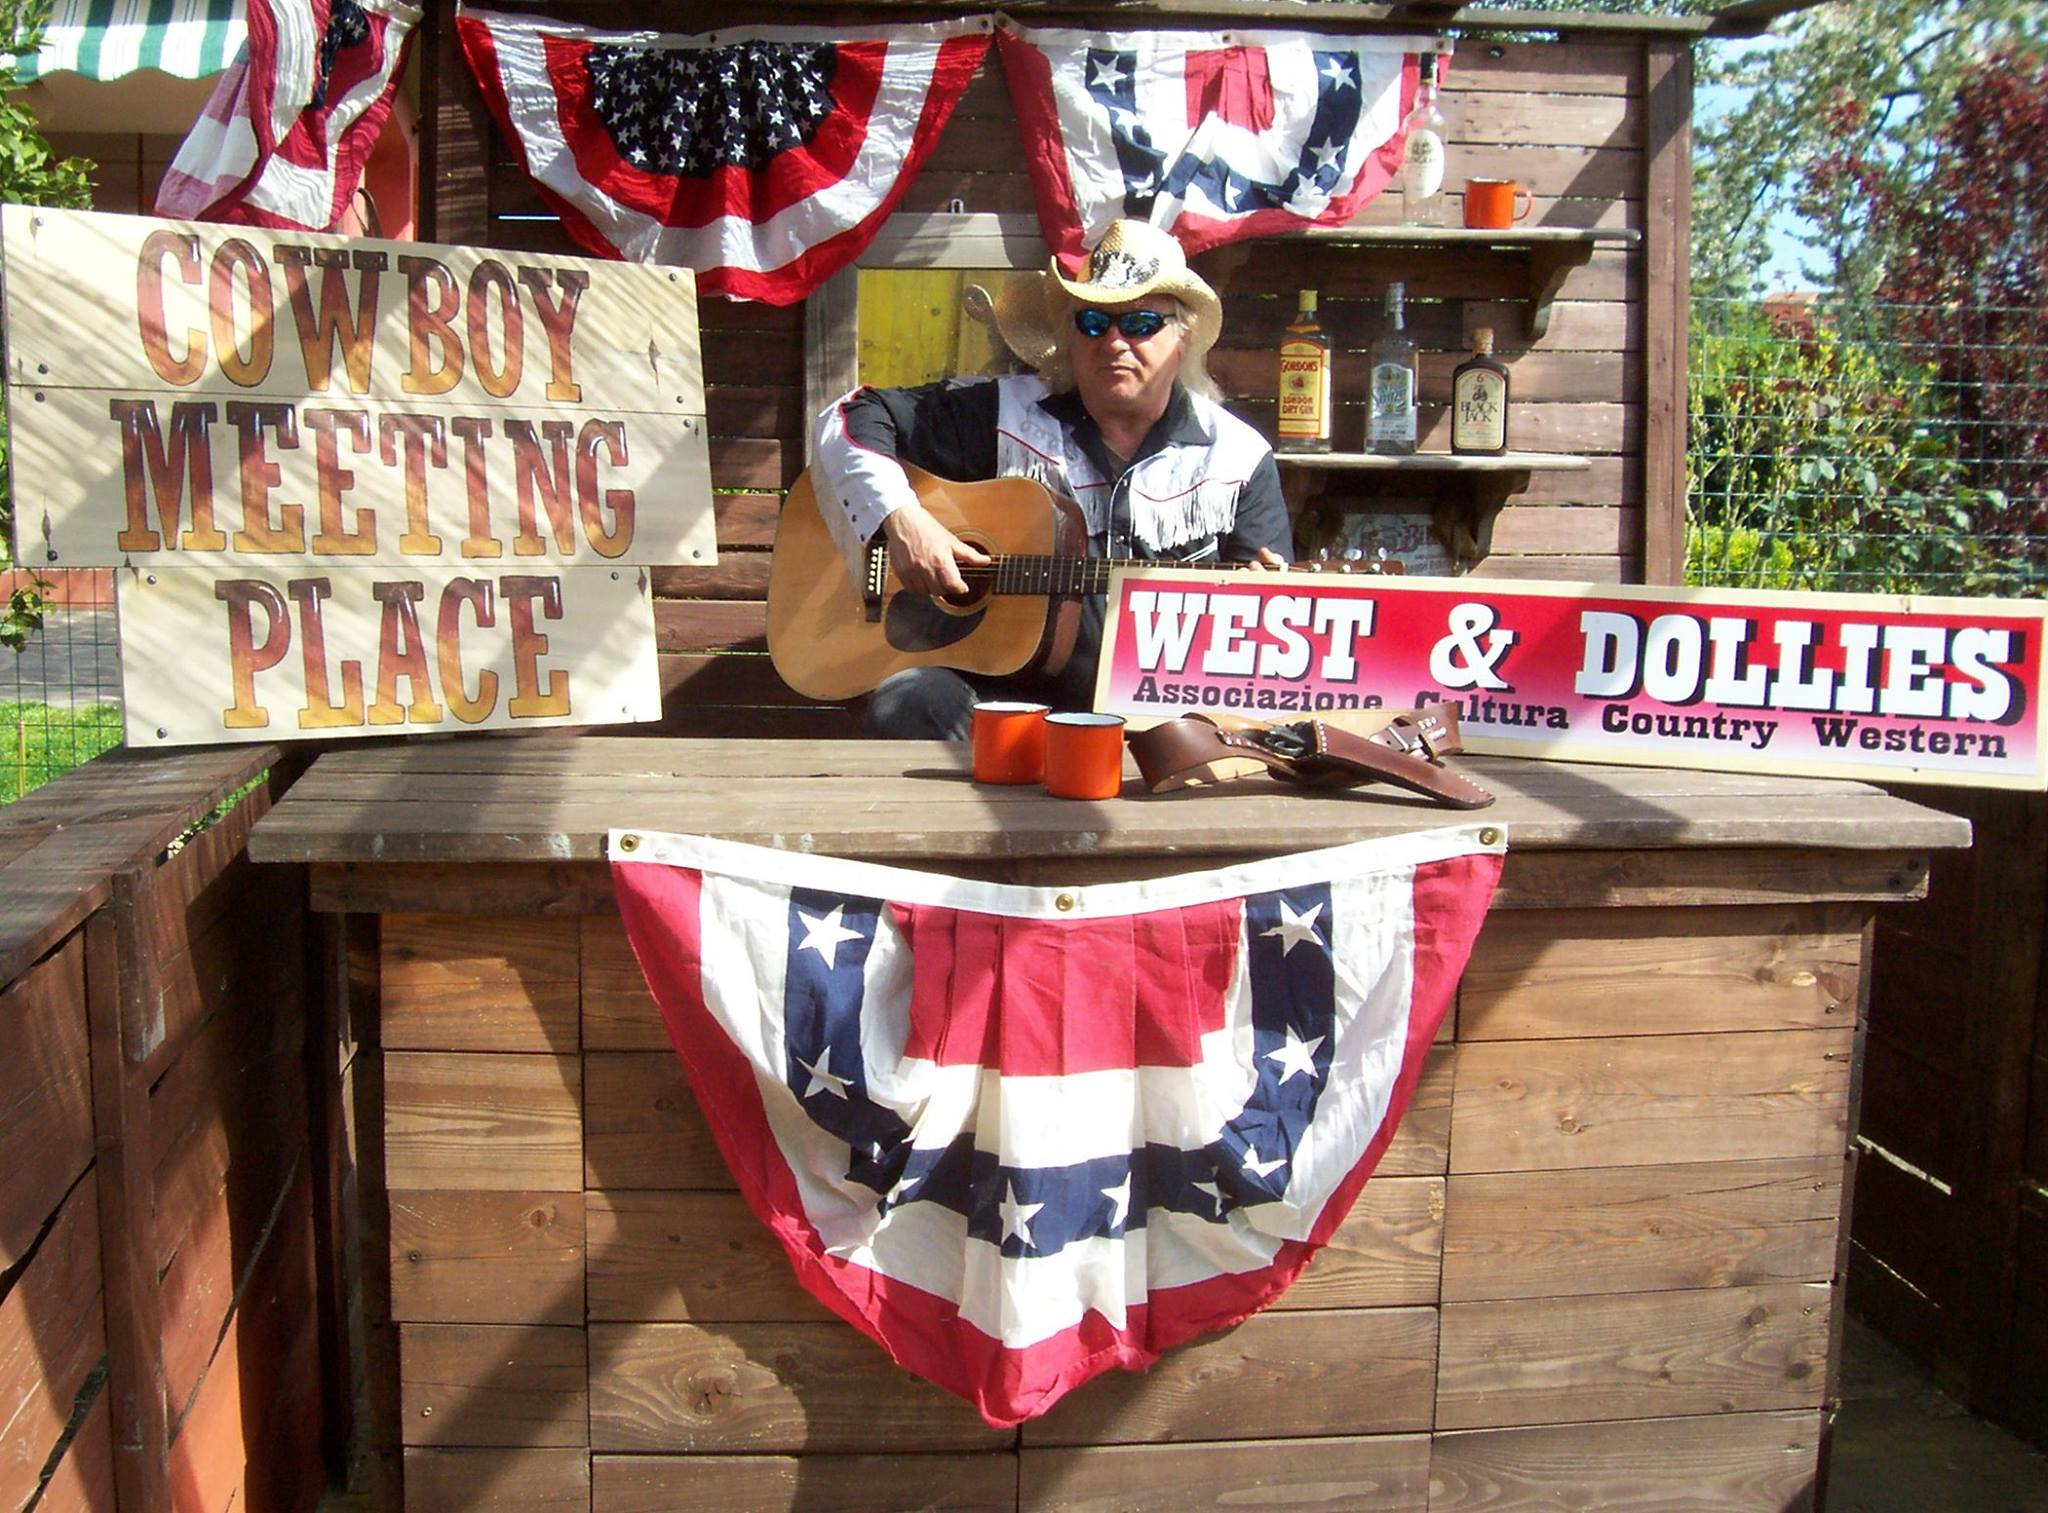 associazione country western